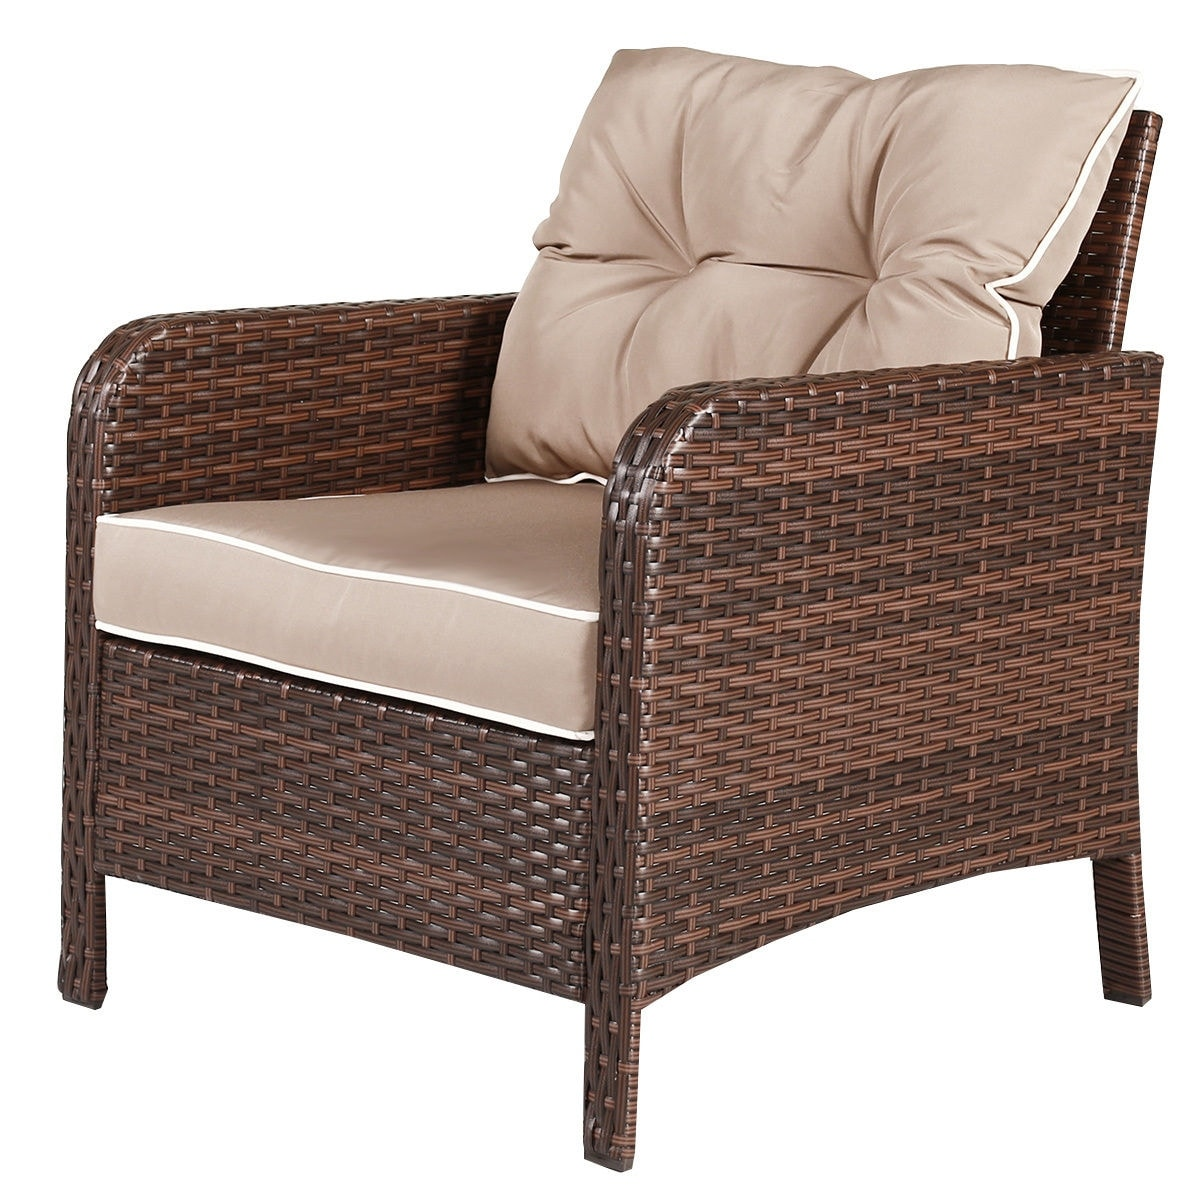 Costway 5 Pcs Rattan Wicker Furniture Set Sofa Ottoman W Brown Cushion Patio Garden Yard As Pic Free Shipping Today 16501359